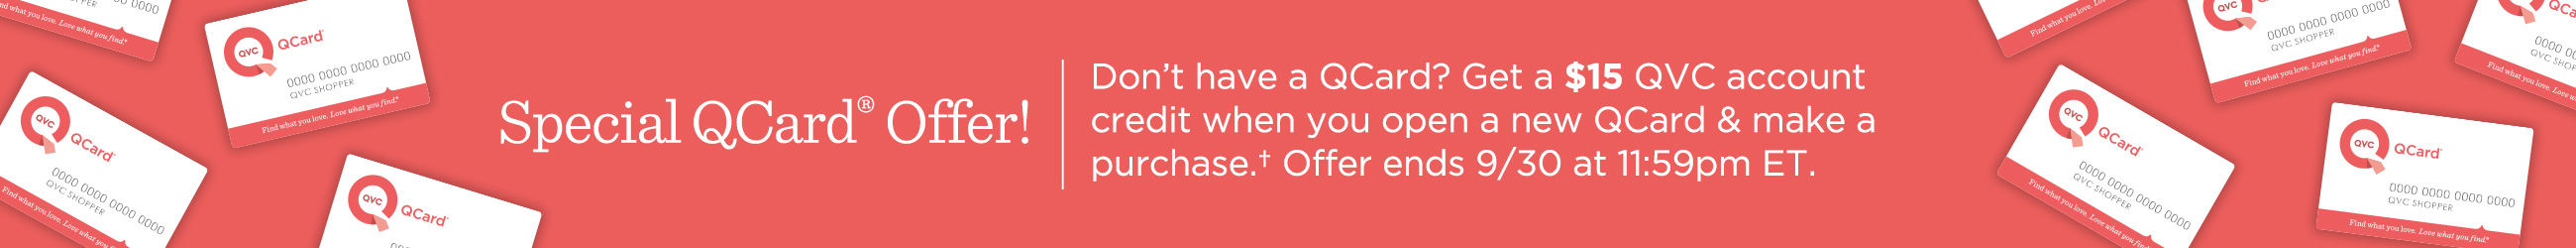 Special QCard® Offer!  Don't have a QCard? Get a $15 QVC account credit when you open a new QCard & make a purchase.† Offer ends 9/30 at 11:59pm ET.